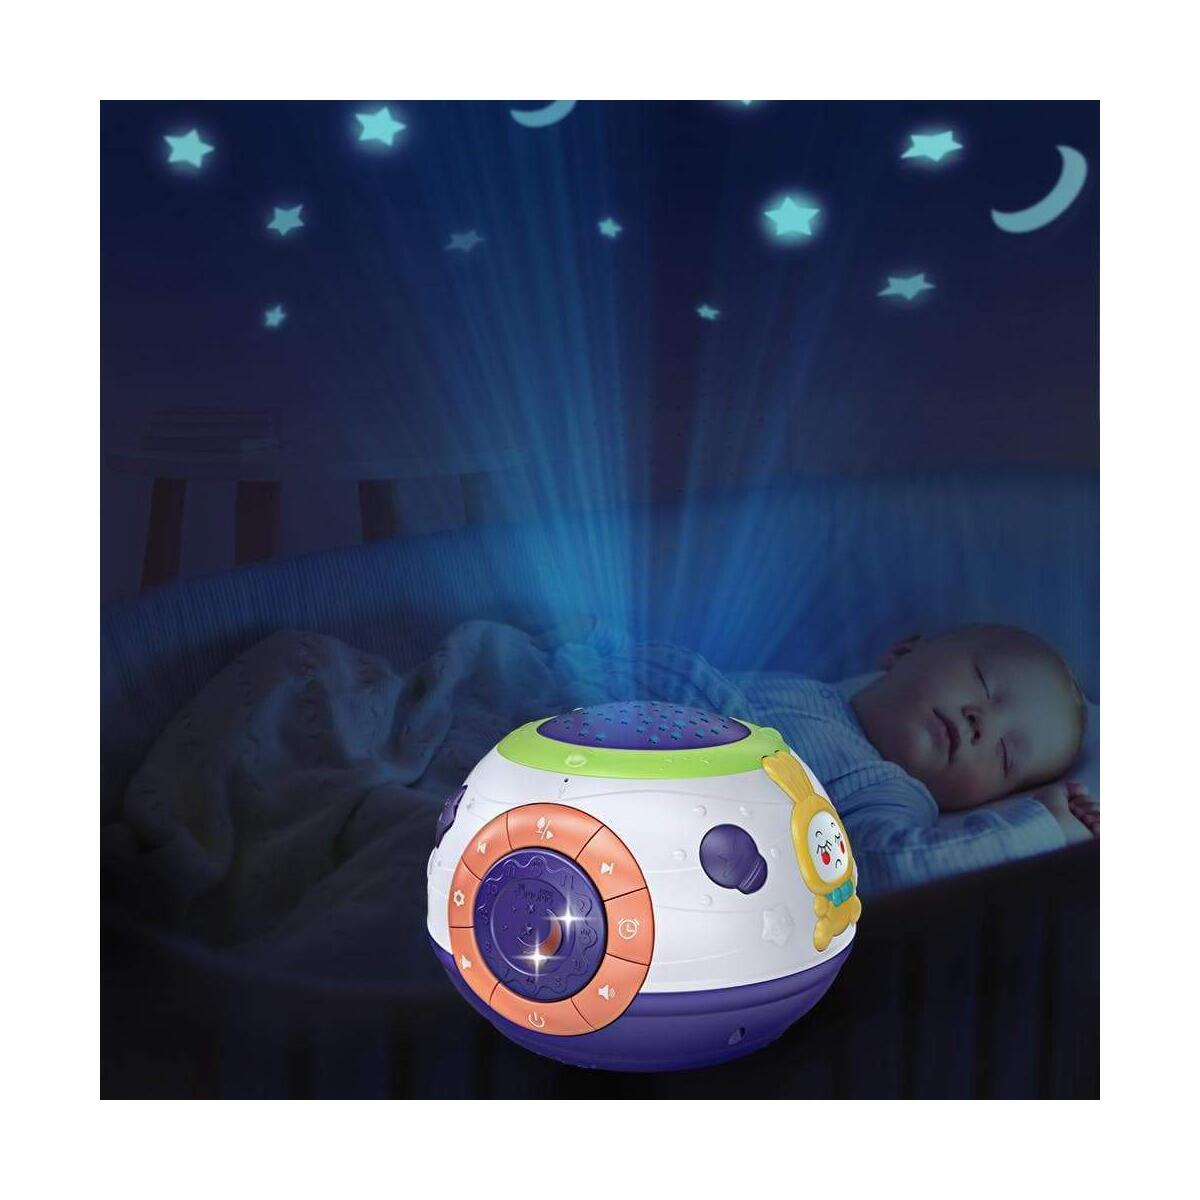 Star Master Night Light Projector Rotating Spin USB Lamp Led Projection Children Kids Baby Sleep Lighting  Kids Gift Home Decoration